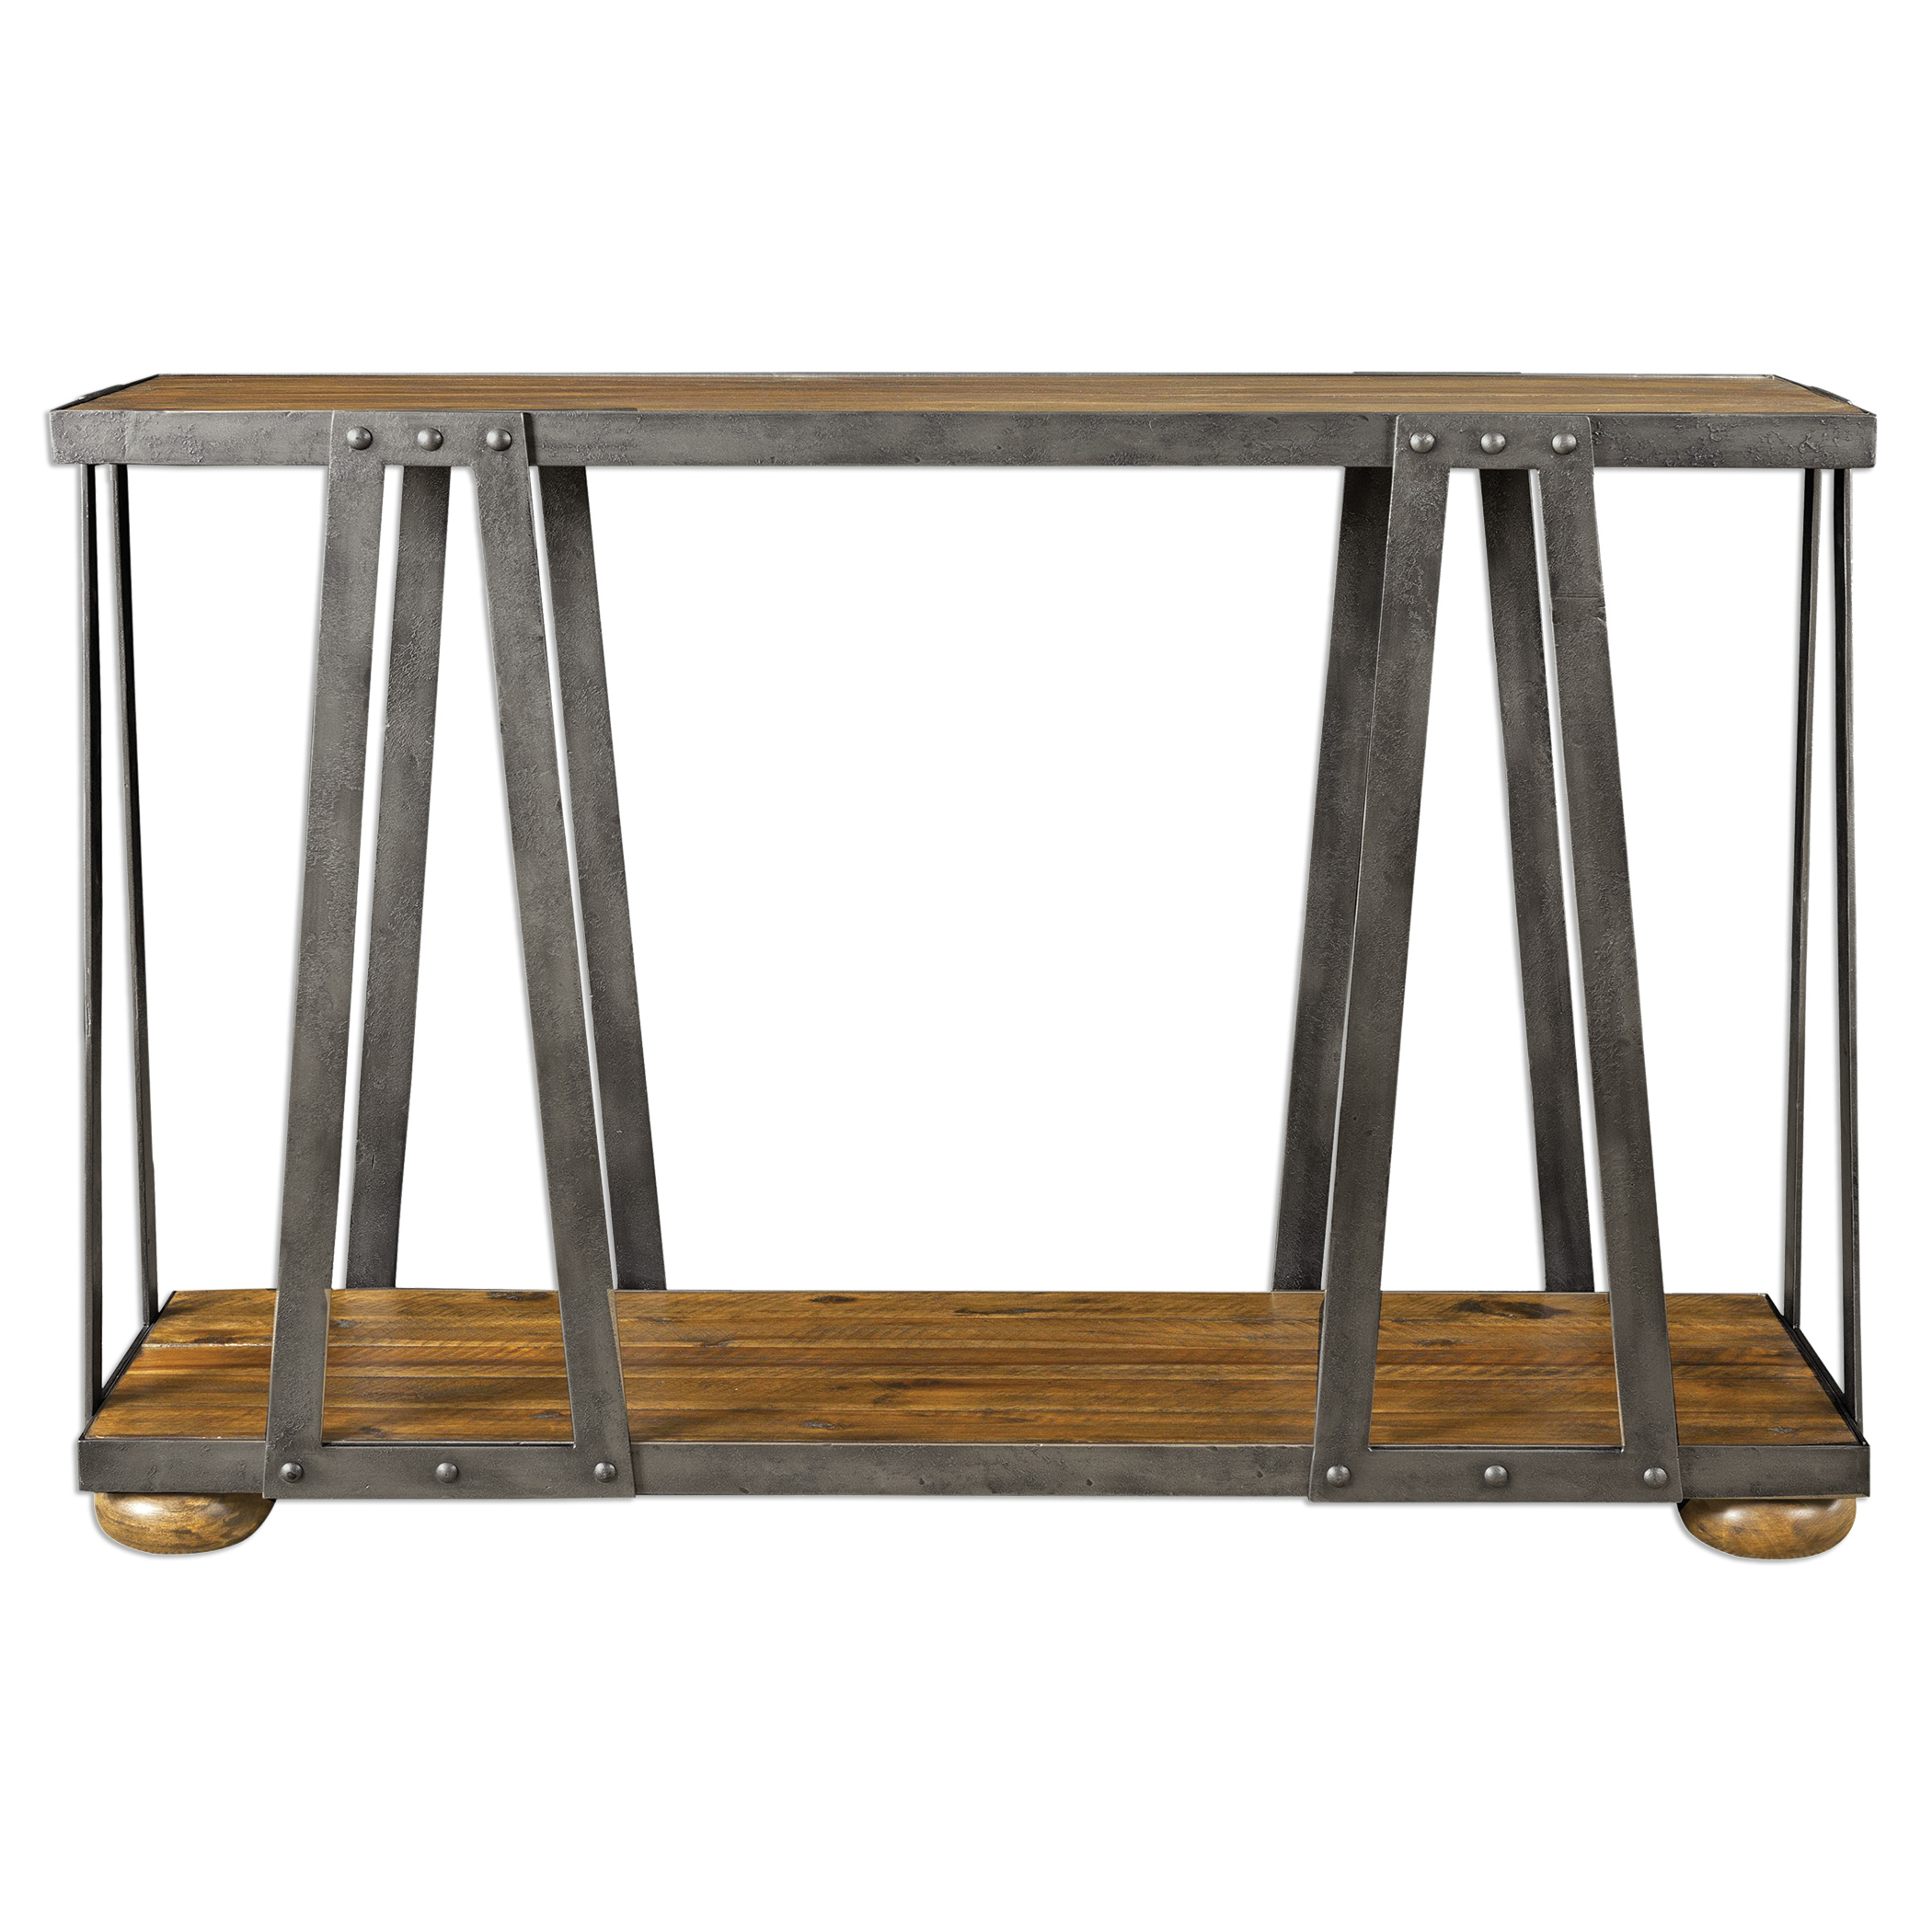 Uttermost Accent Furniture Vladimir Console Table - Item Number: 25912